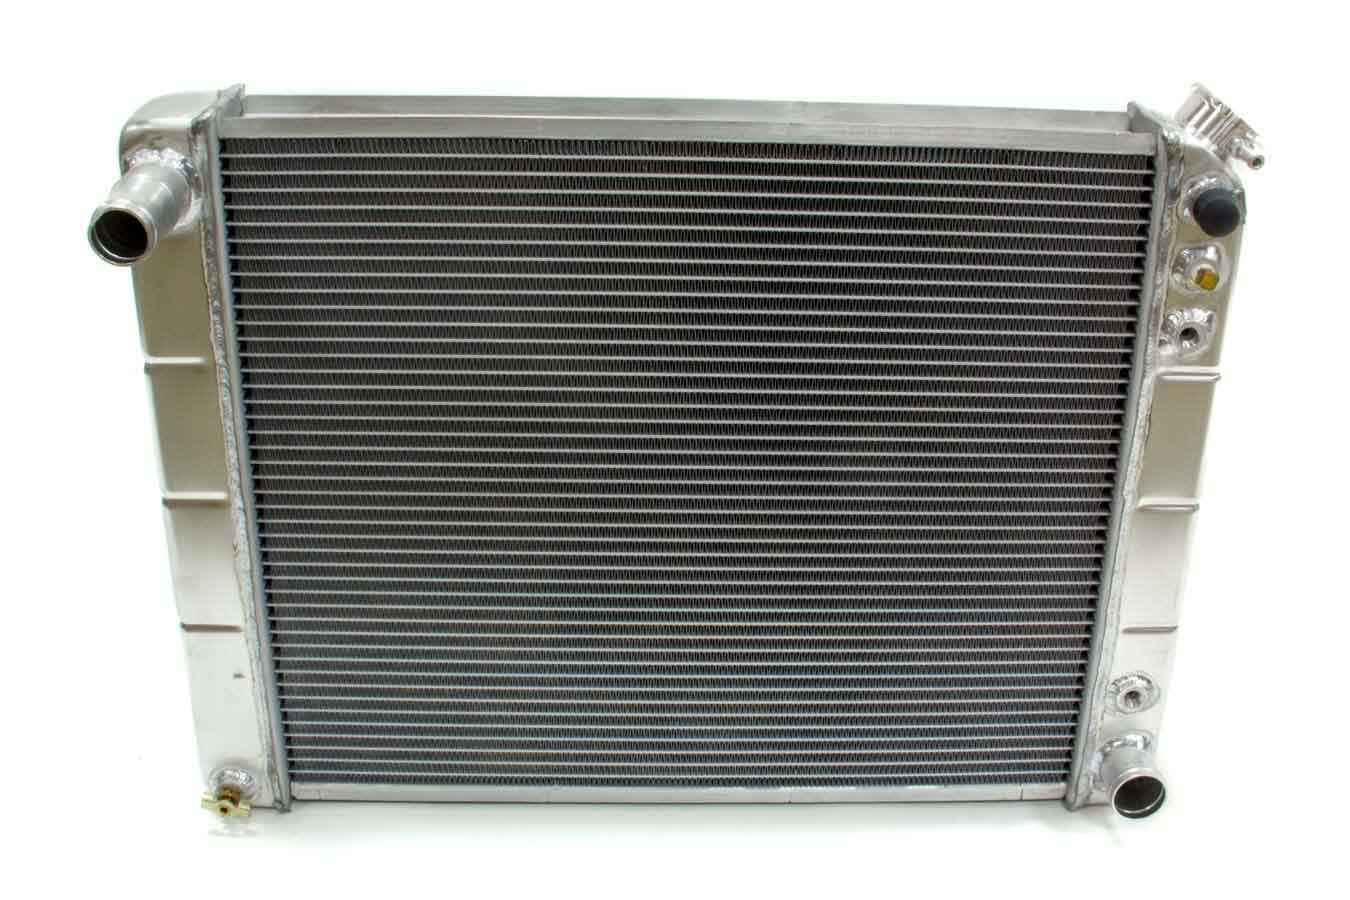 Northern Radiator 205028 Radiator, 25-3/8 in W x 18-5/8 in H x 3-1/8 in D, Passenger Side Inlet, Driver Side Outlet, Aluminum, Natural, Automatic, GM 1966-88, Each